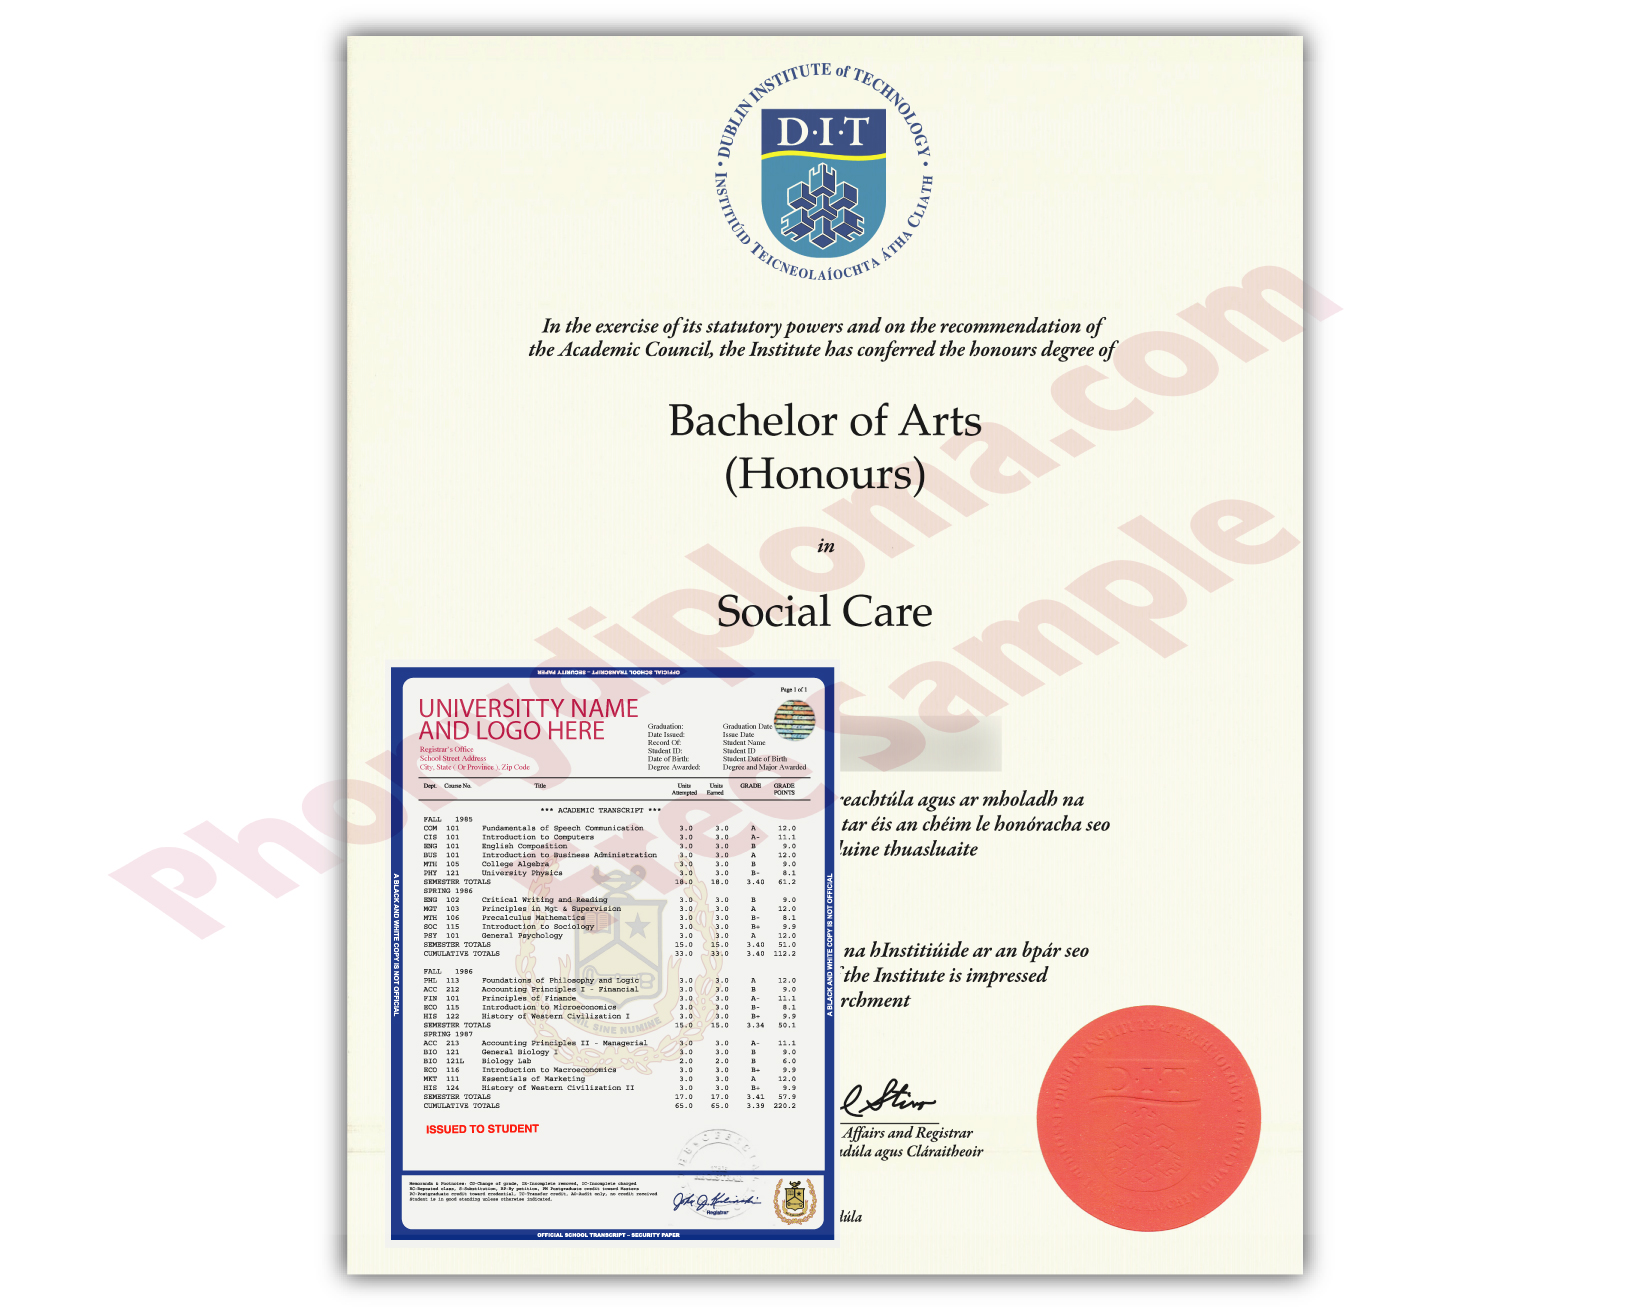 Fake Diploma and Transcripts from Ireland University